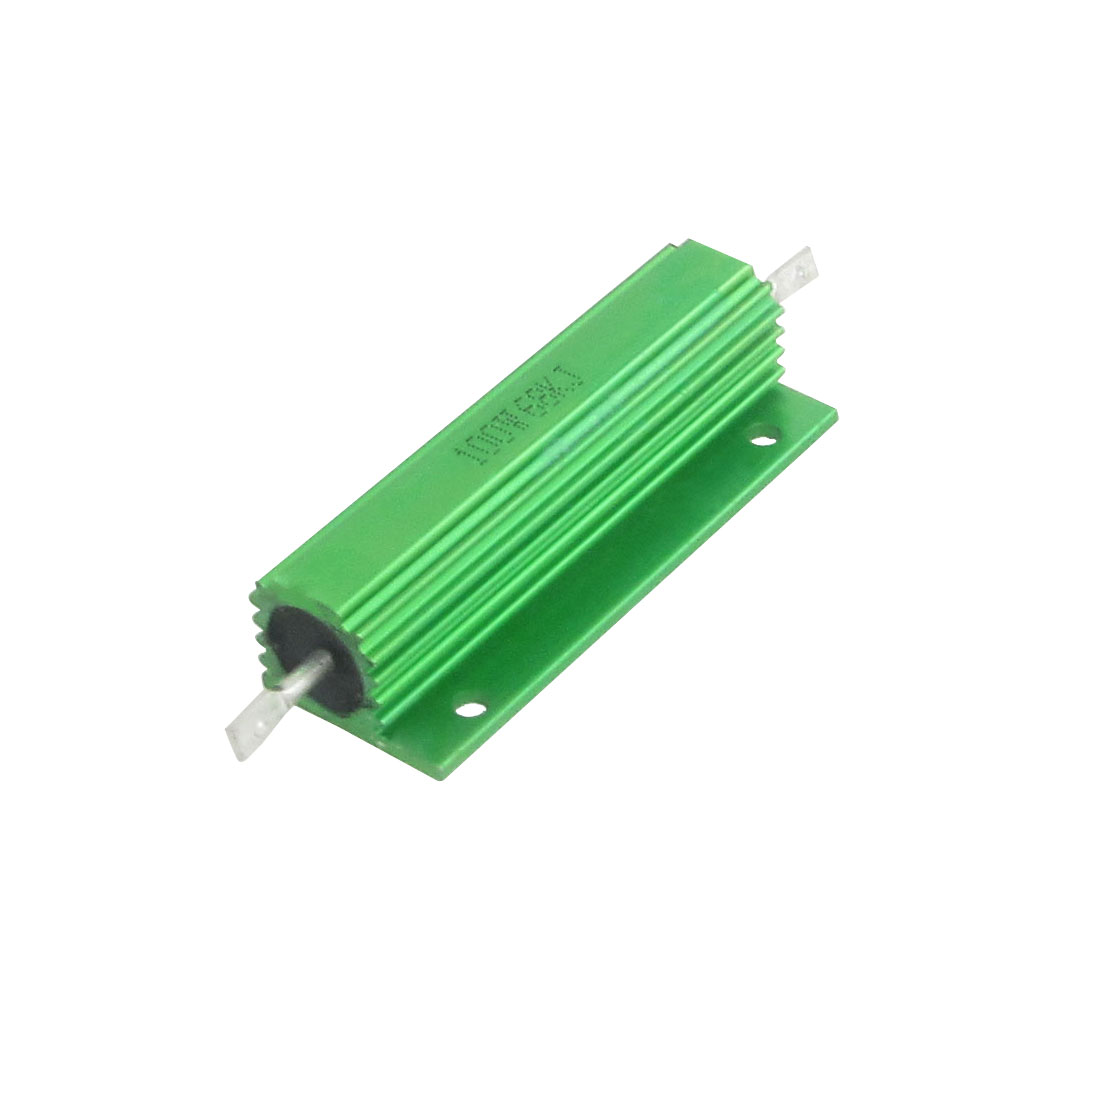 100W 68K Ohm Screw Tap Mounted Aluminum Housed Wirewound Resistors 2 Pcs